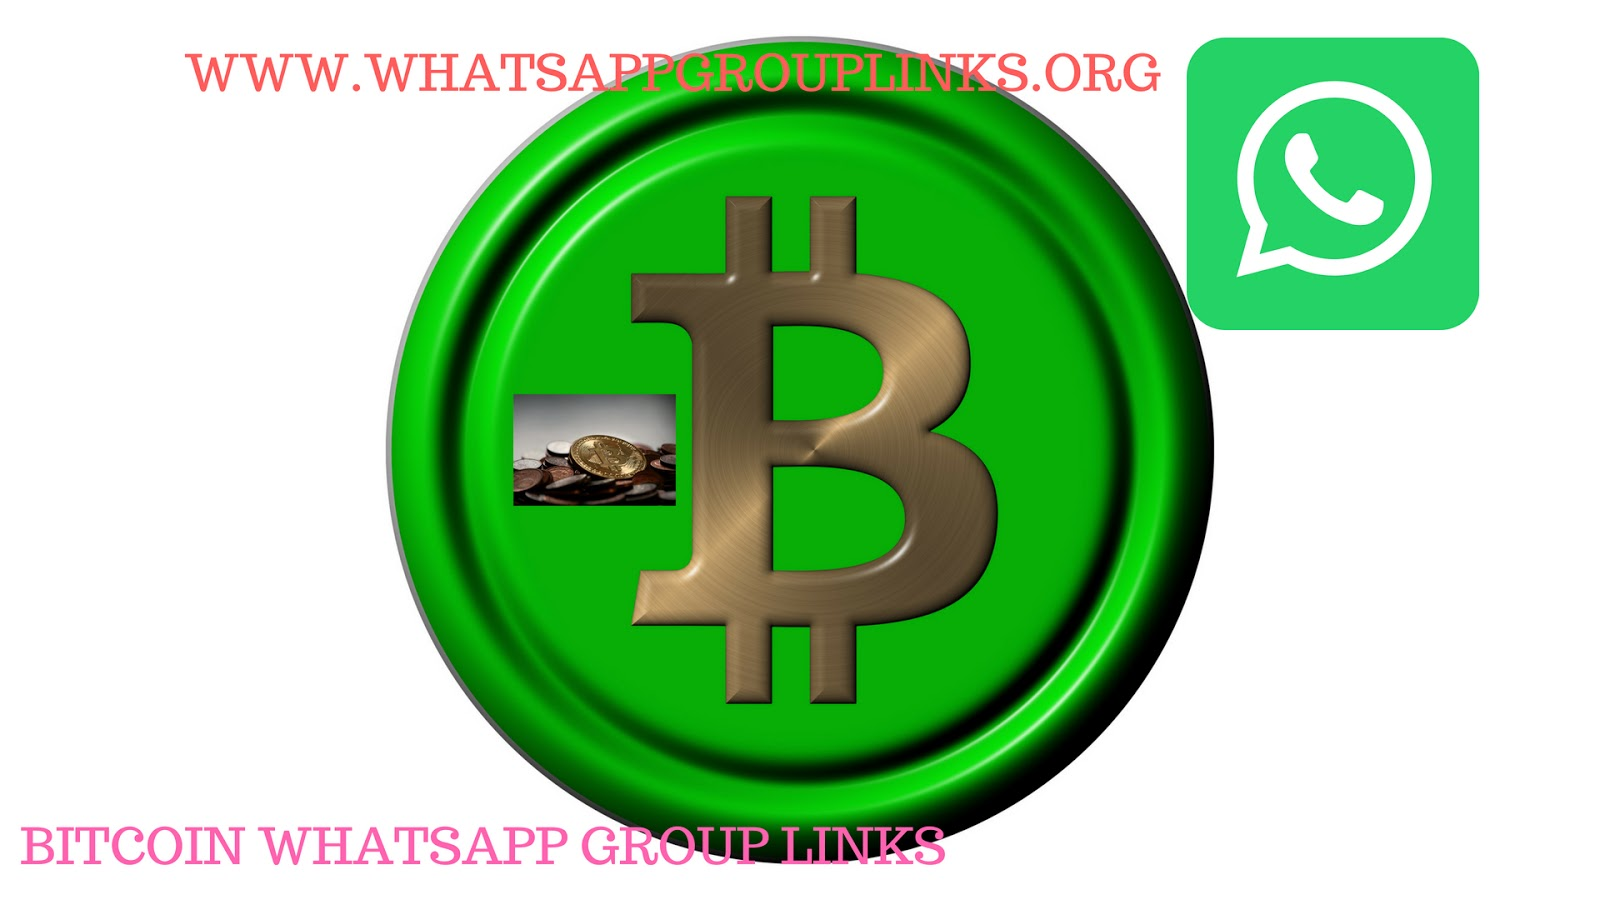 join bitcoin WhatsApp group links list - Whatsapp Group Links